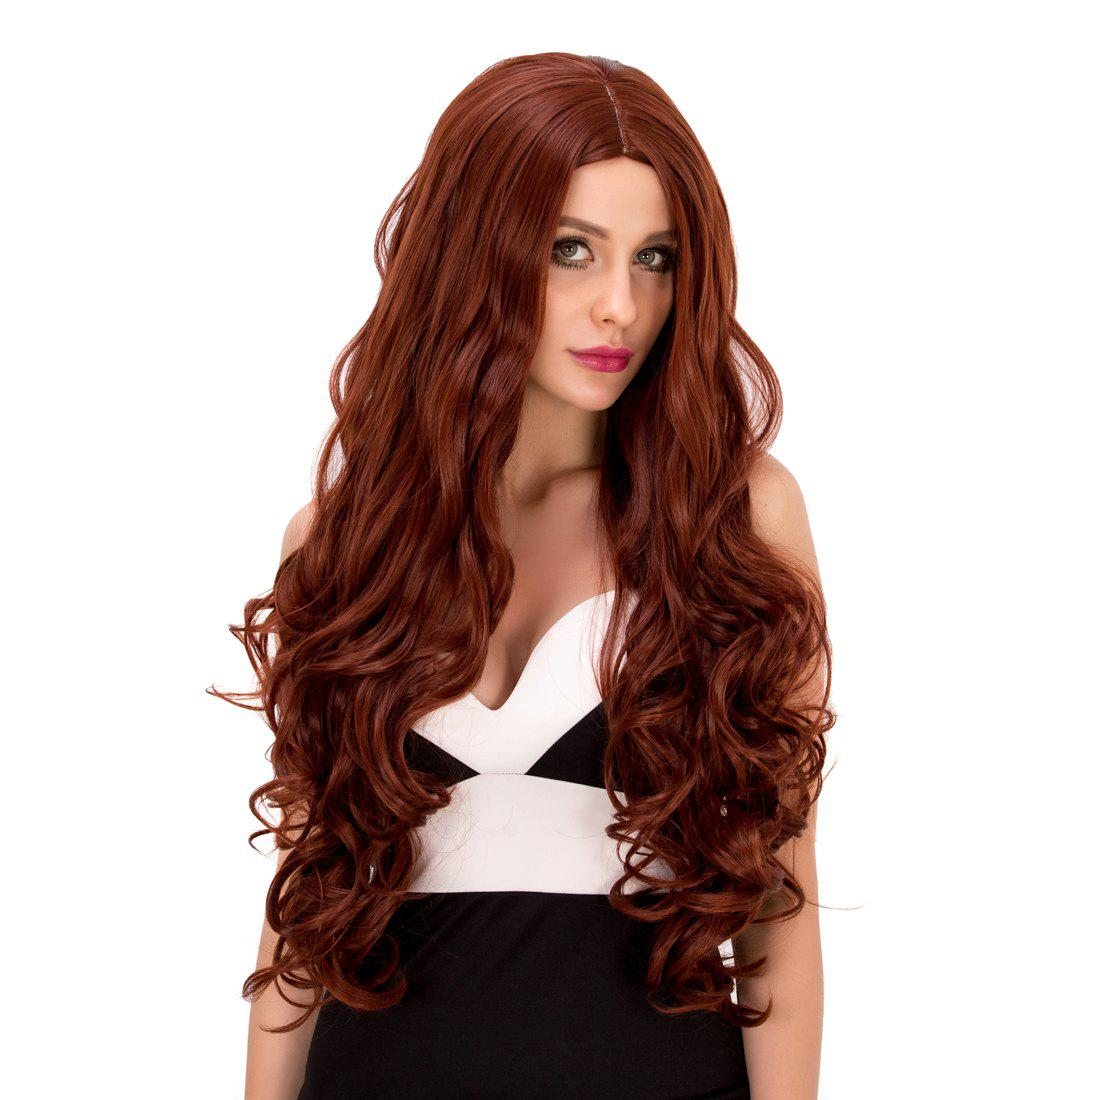 Stylish Women's Long Wavy Middle Part Auburn Brown Synthetic Hair Wig - AUBURN BROWN